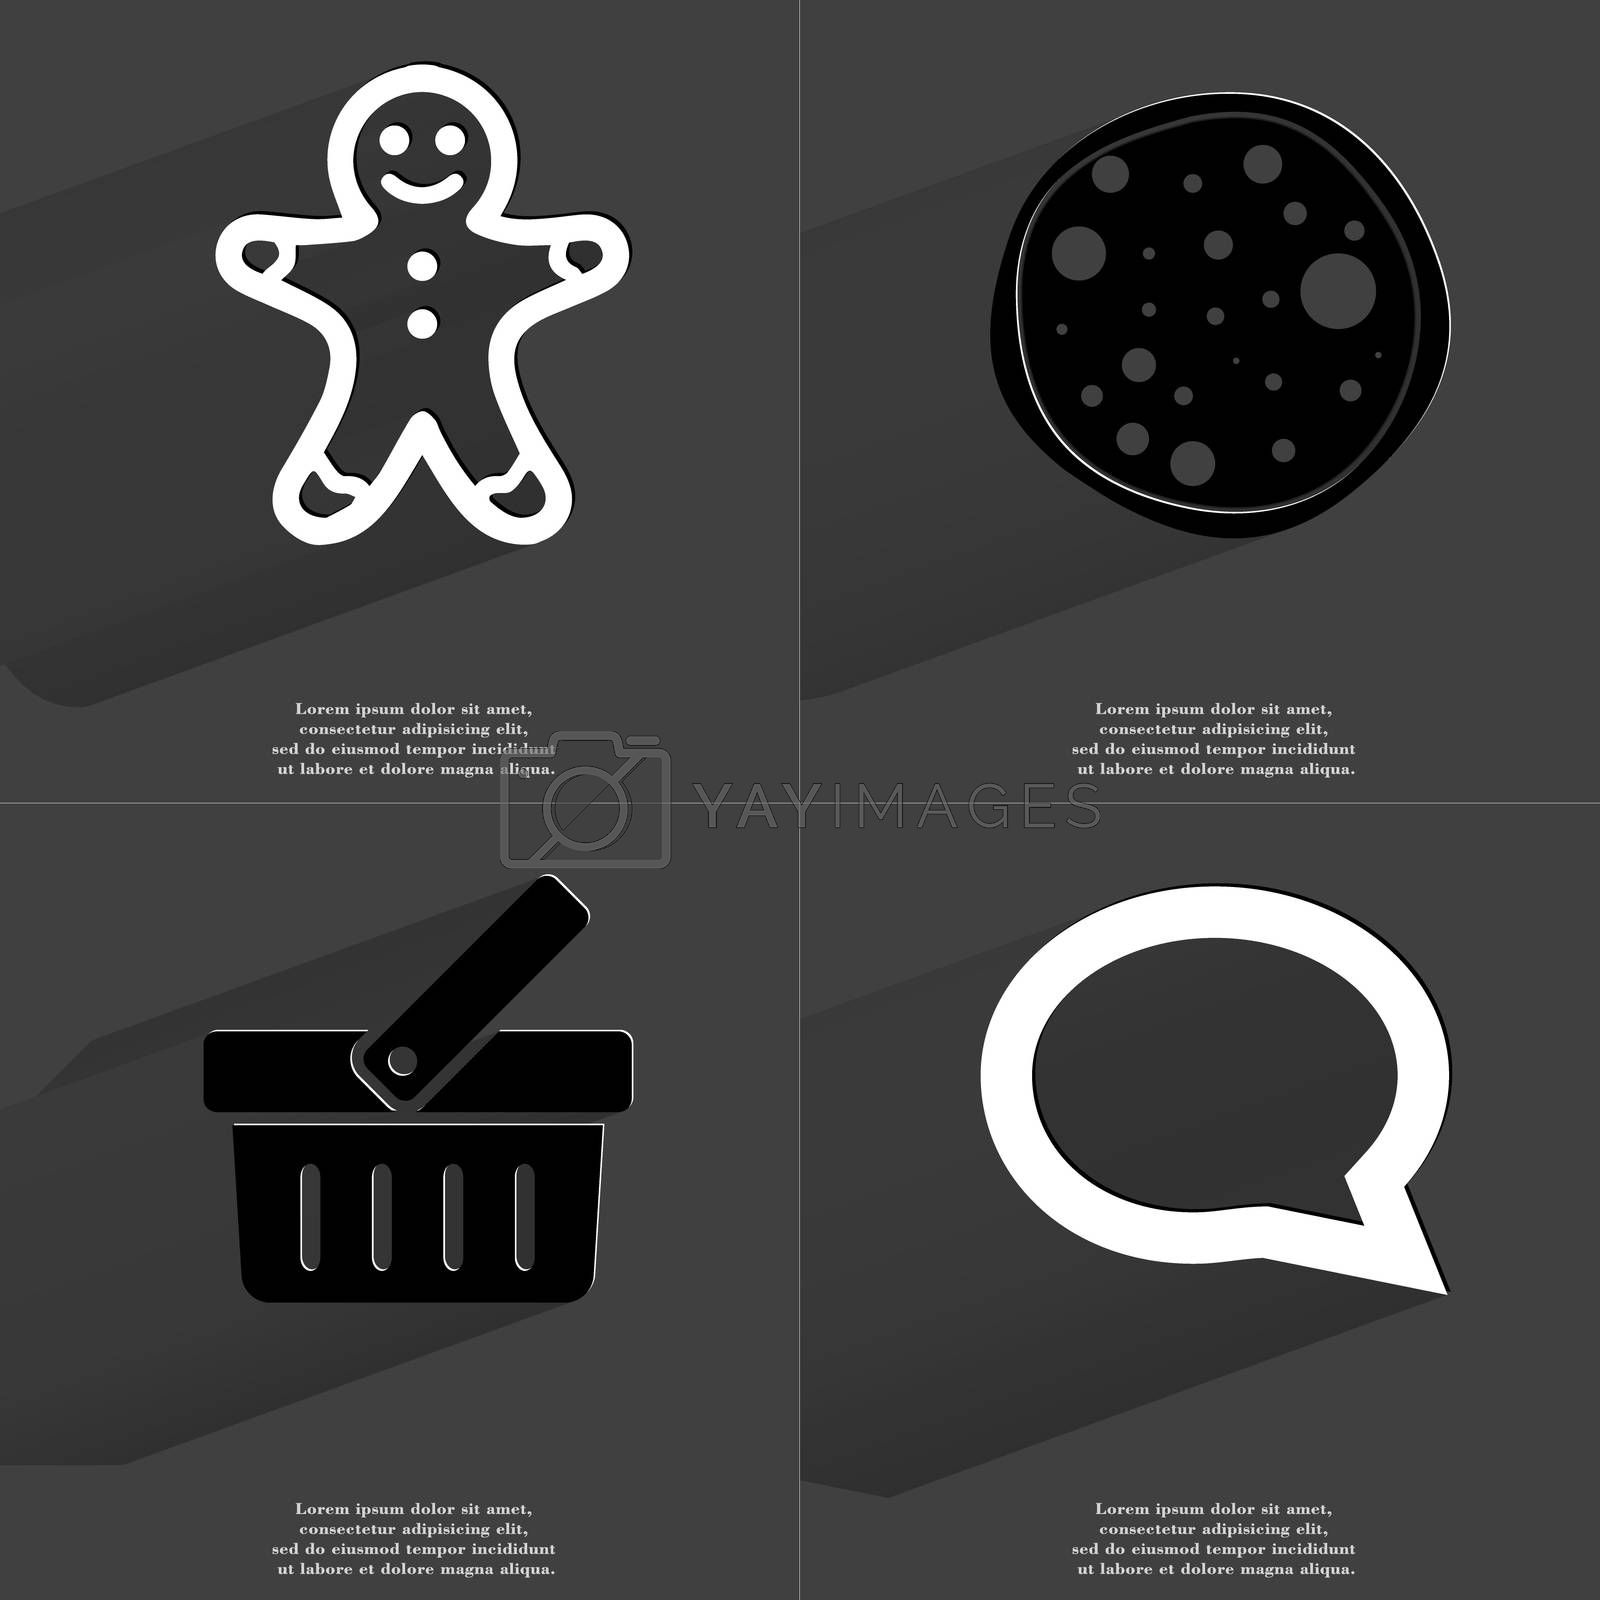 Royalty free image of Gingerbread man, Pizza, Basket, Chat bubble. Symbols with long shadow. Flat design by serhii_lohvyniuk